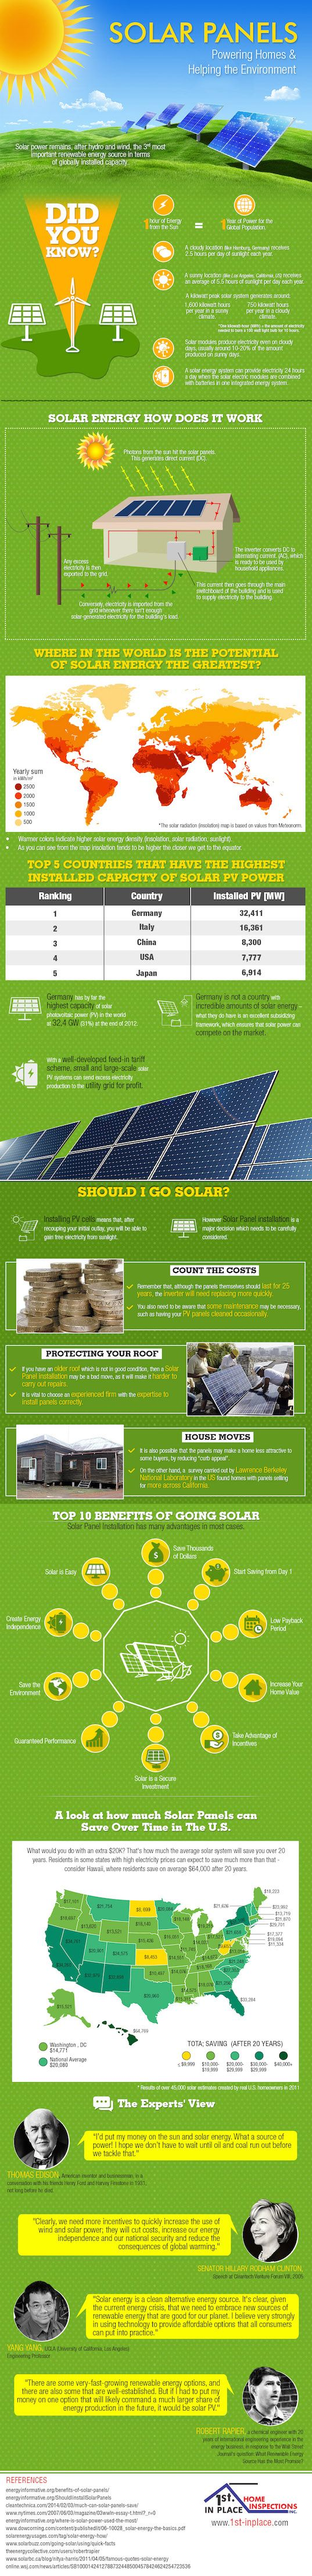 infographic-learn-how-solar-panels-work-and-why-you-should-install-them-for-your-home | Inhabitat - Sustainable Design Innovation, Eco Architecture, Green Building